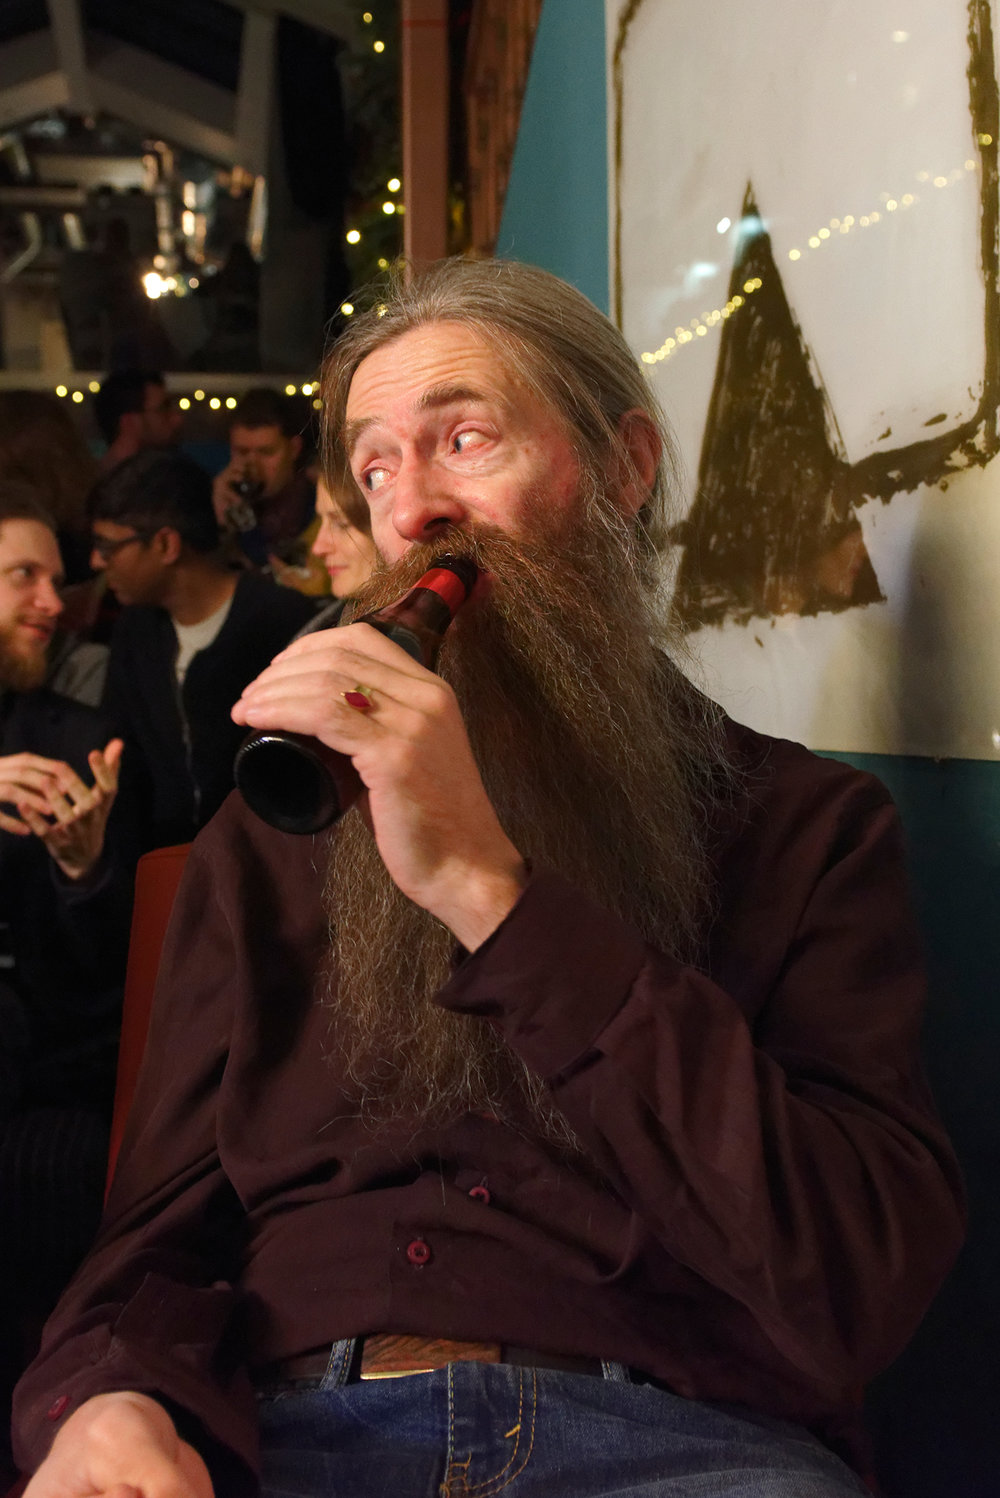 Aubrey de Grey, November, 2017